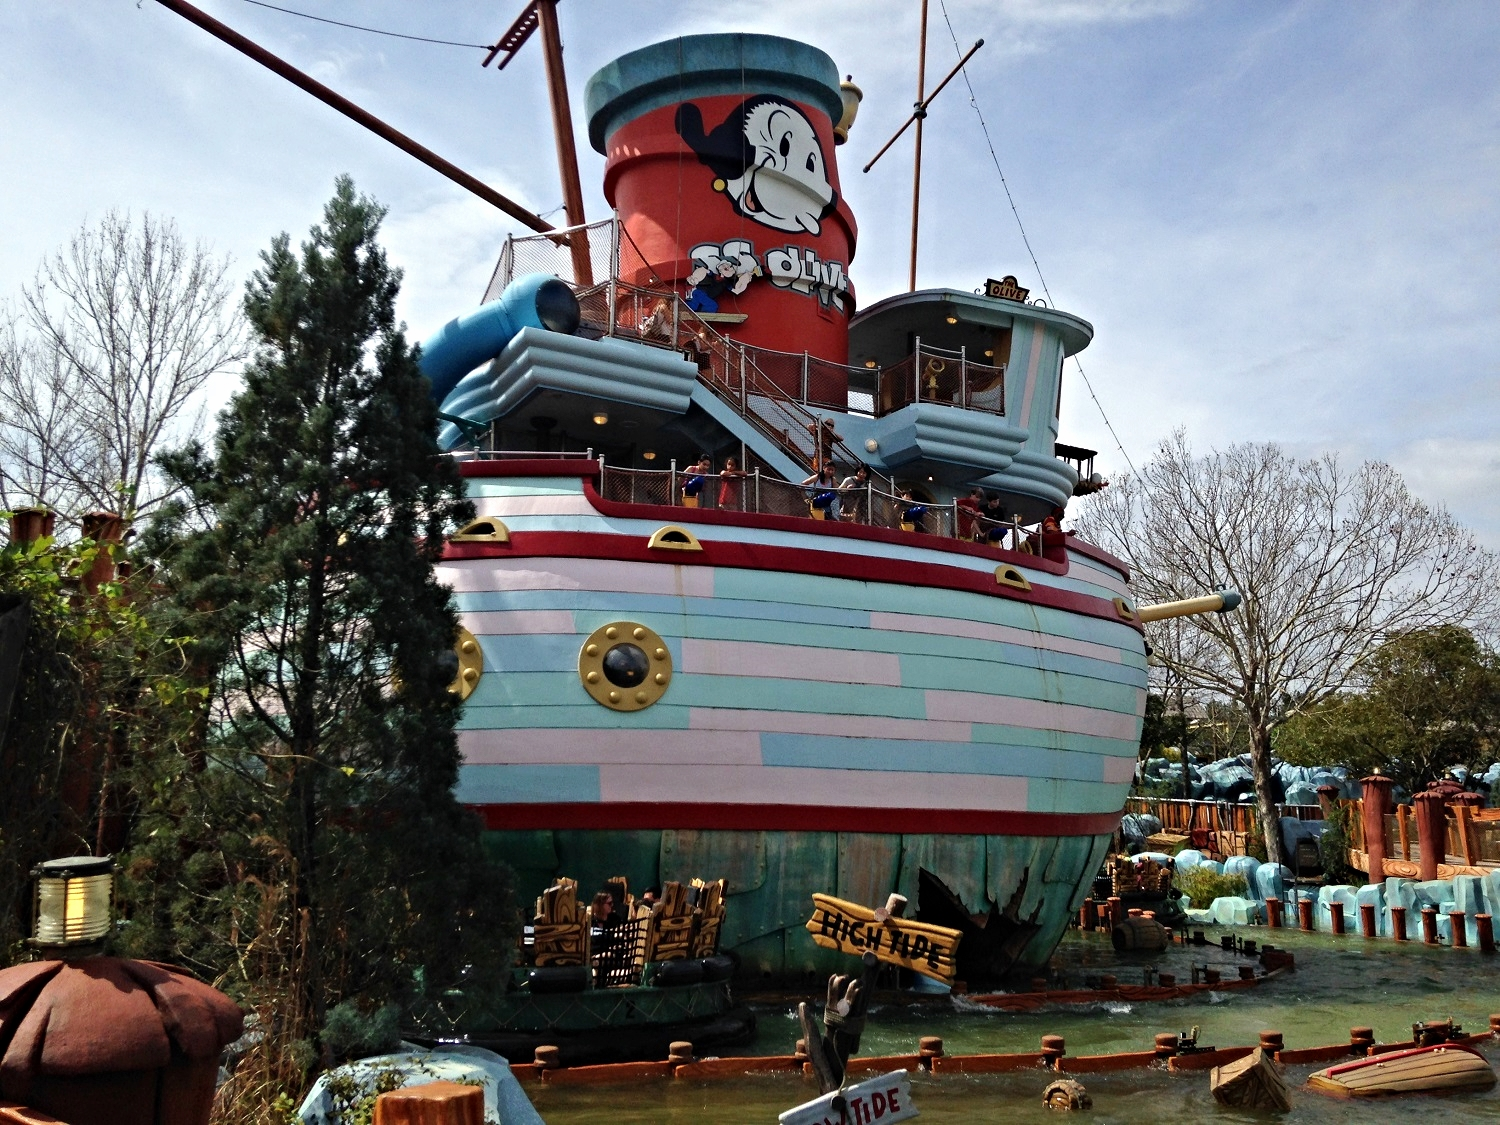 Learn about all of the interactive features on Me Ship, The Olive in Islands of Adventure.